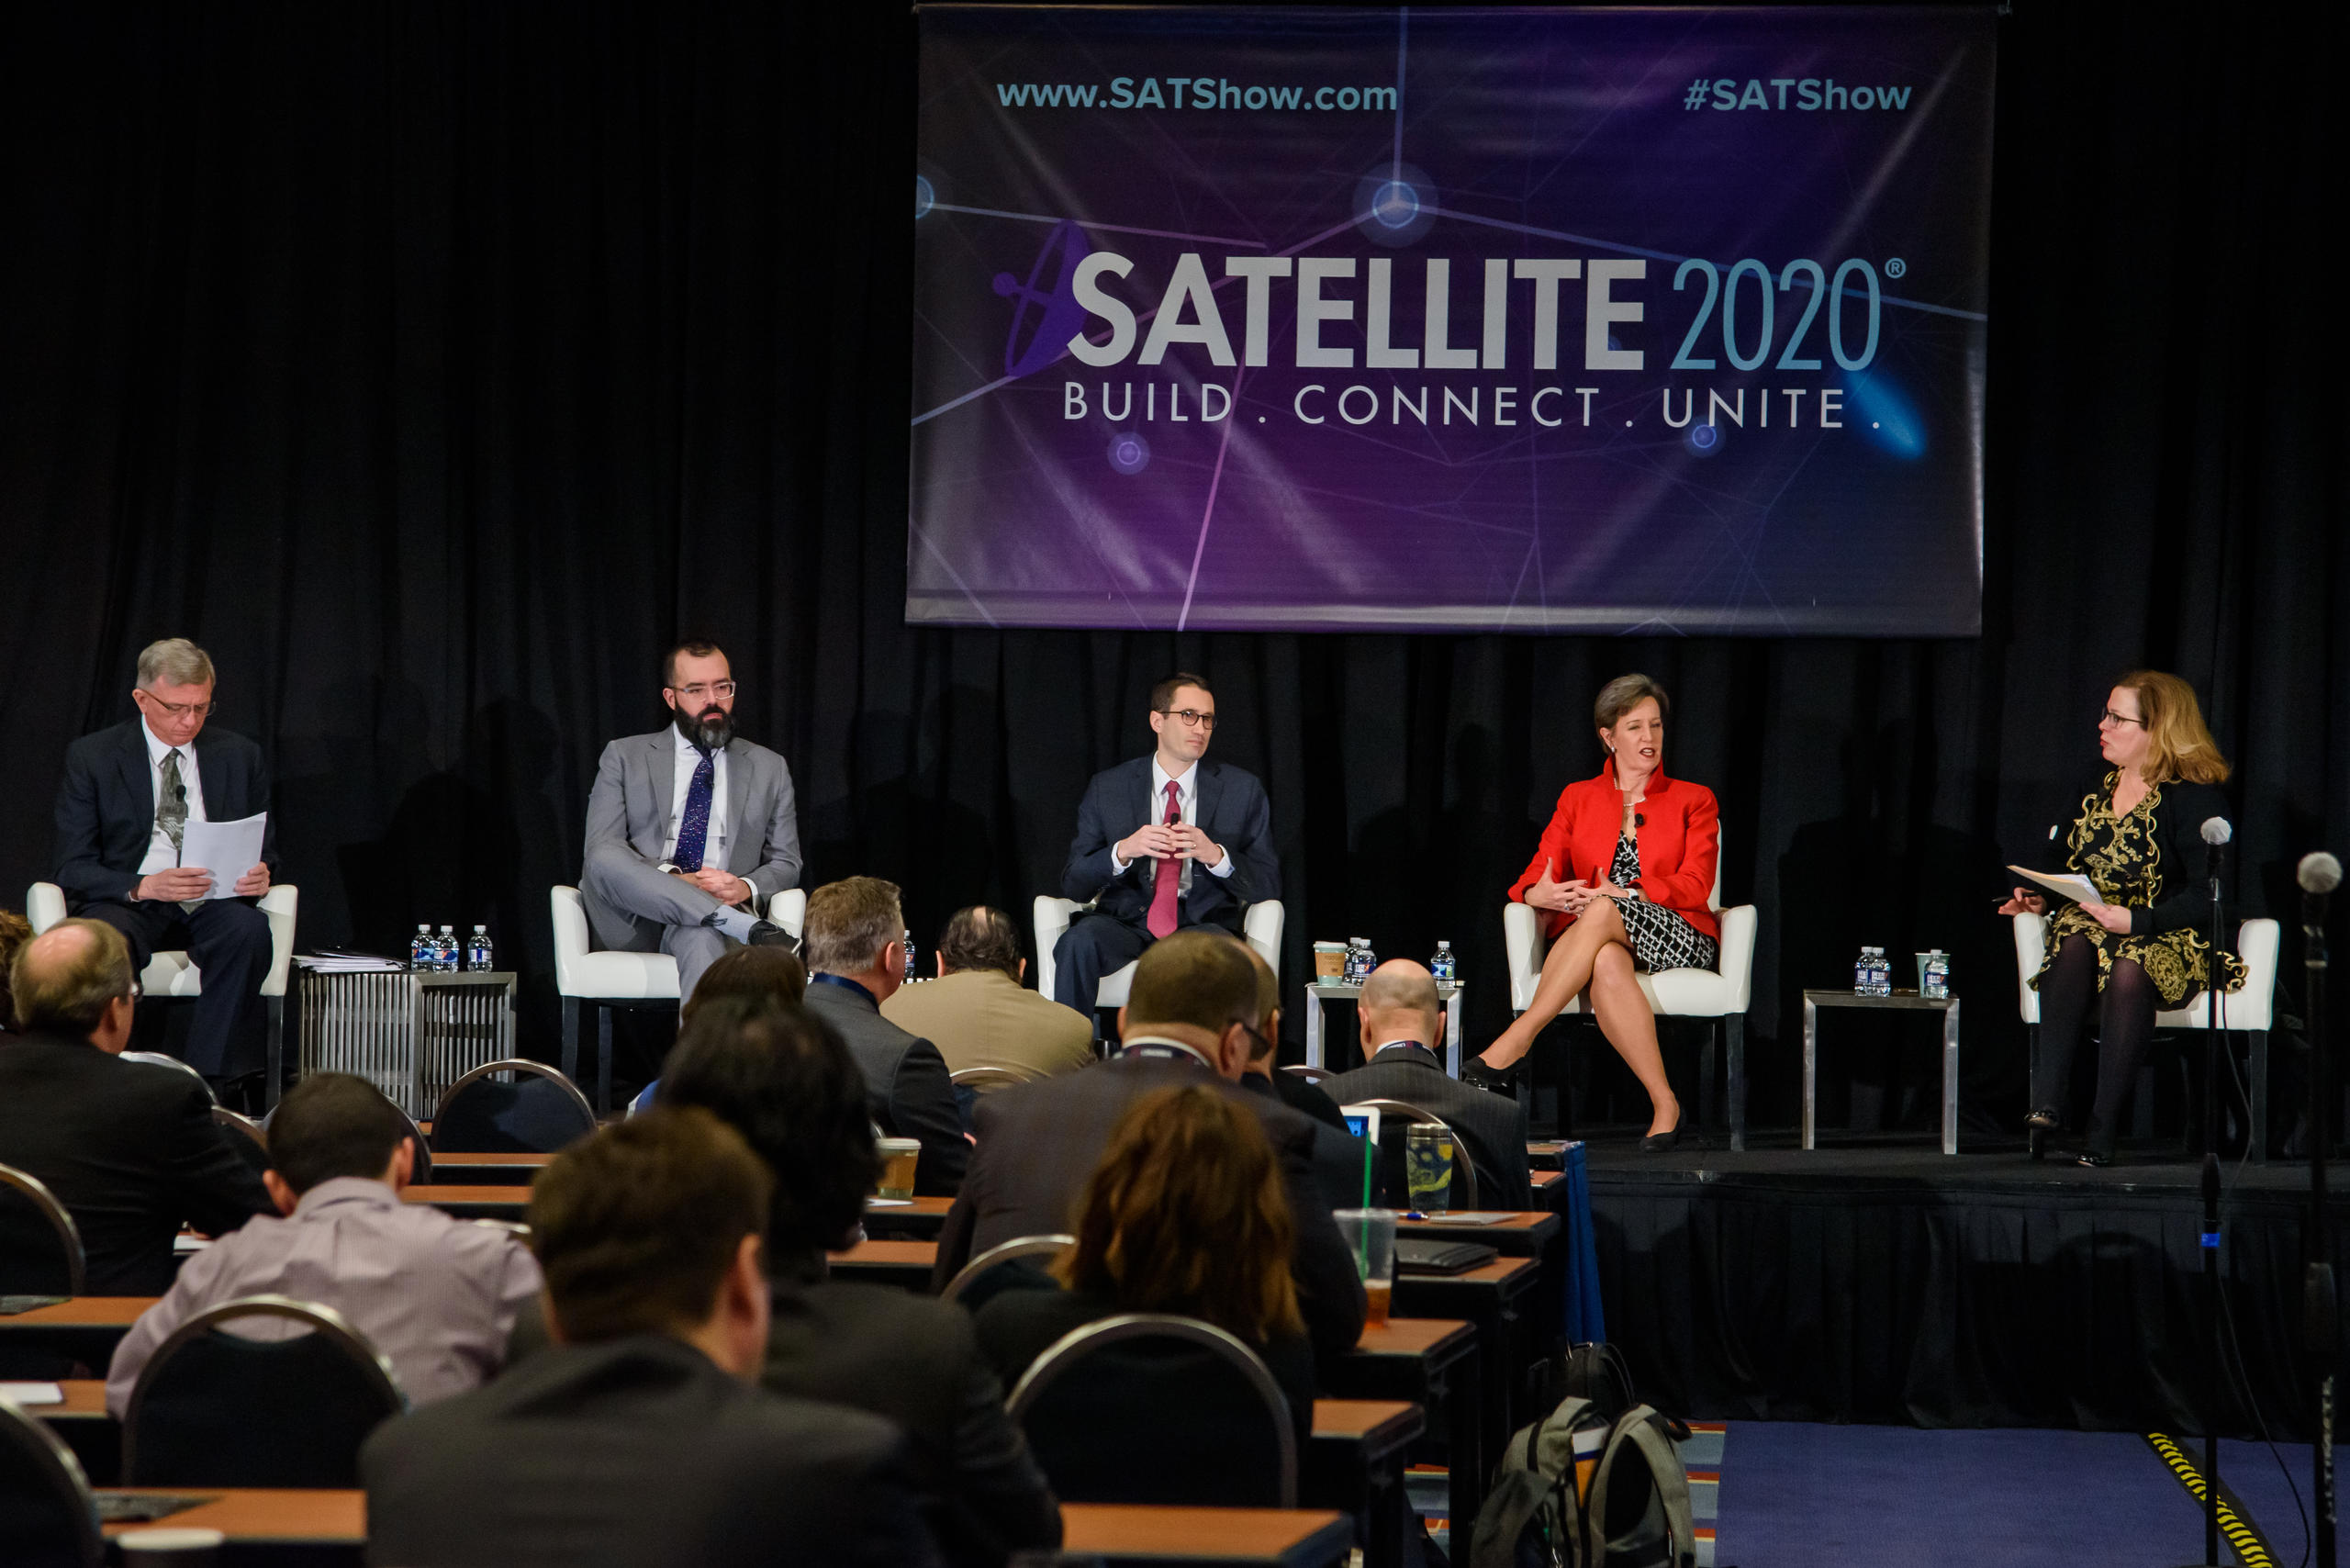 Military Modernization Experts Push for Innovation, Collaboration, and Risk Taking